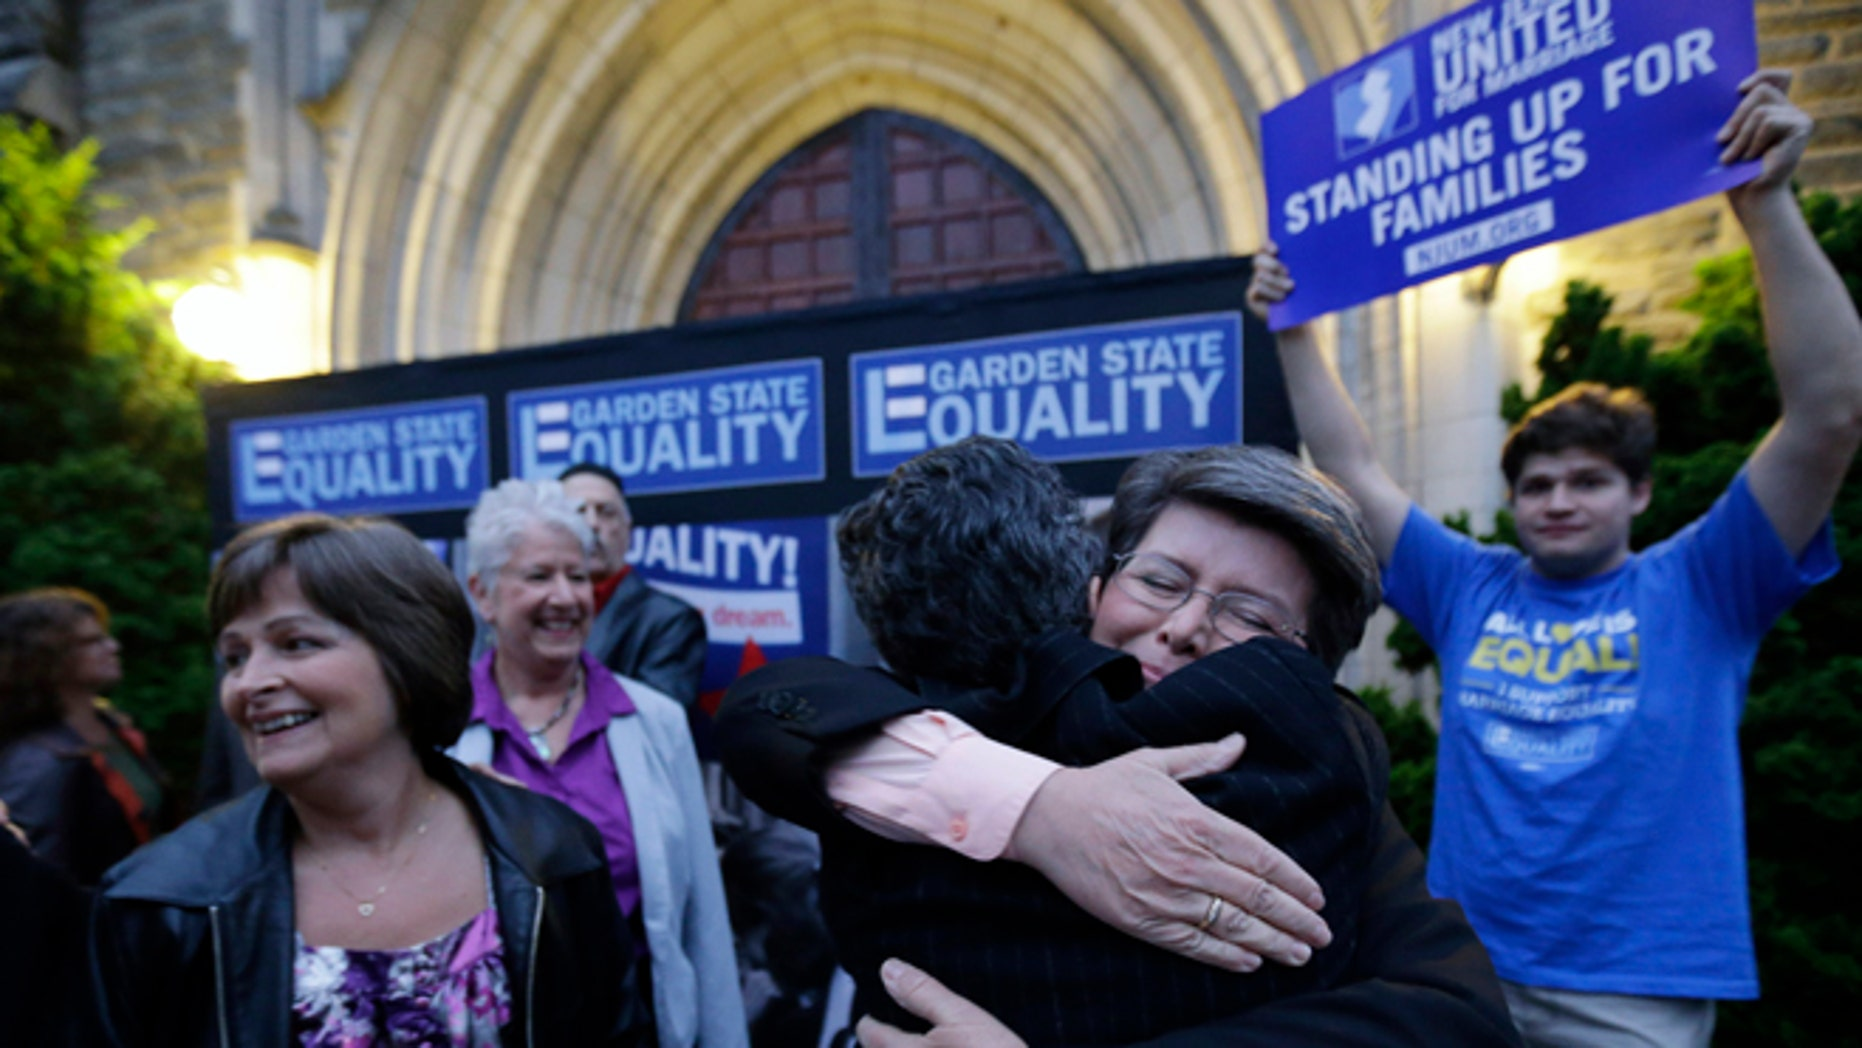 Sept. 27, 2013: Cindy Meneghin, second from right, hugs her attorney Hayley Gorenberg during a rally at Garden State Equality in Montclair, N.J., hours after a Superior Court Judge ruled that New Jersey is unconstitutionally denying federal benefits to gay couples and must allow them to marry. )